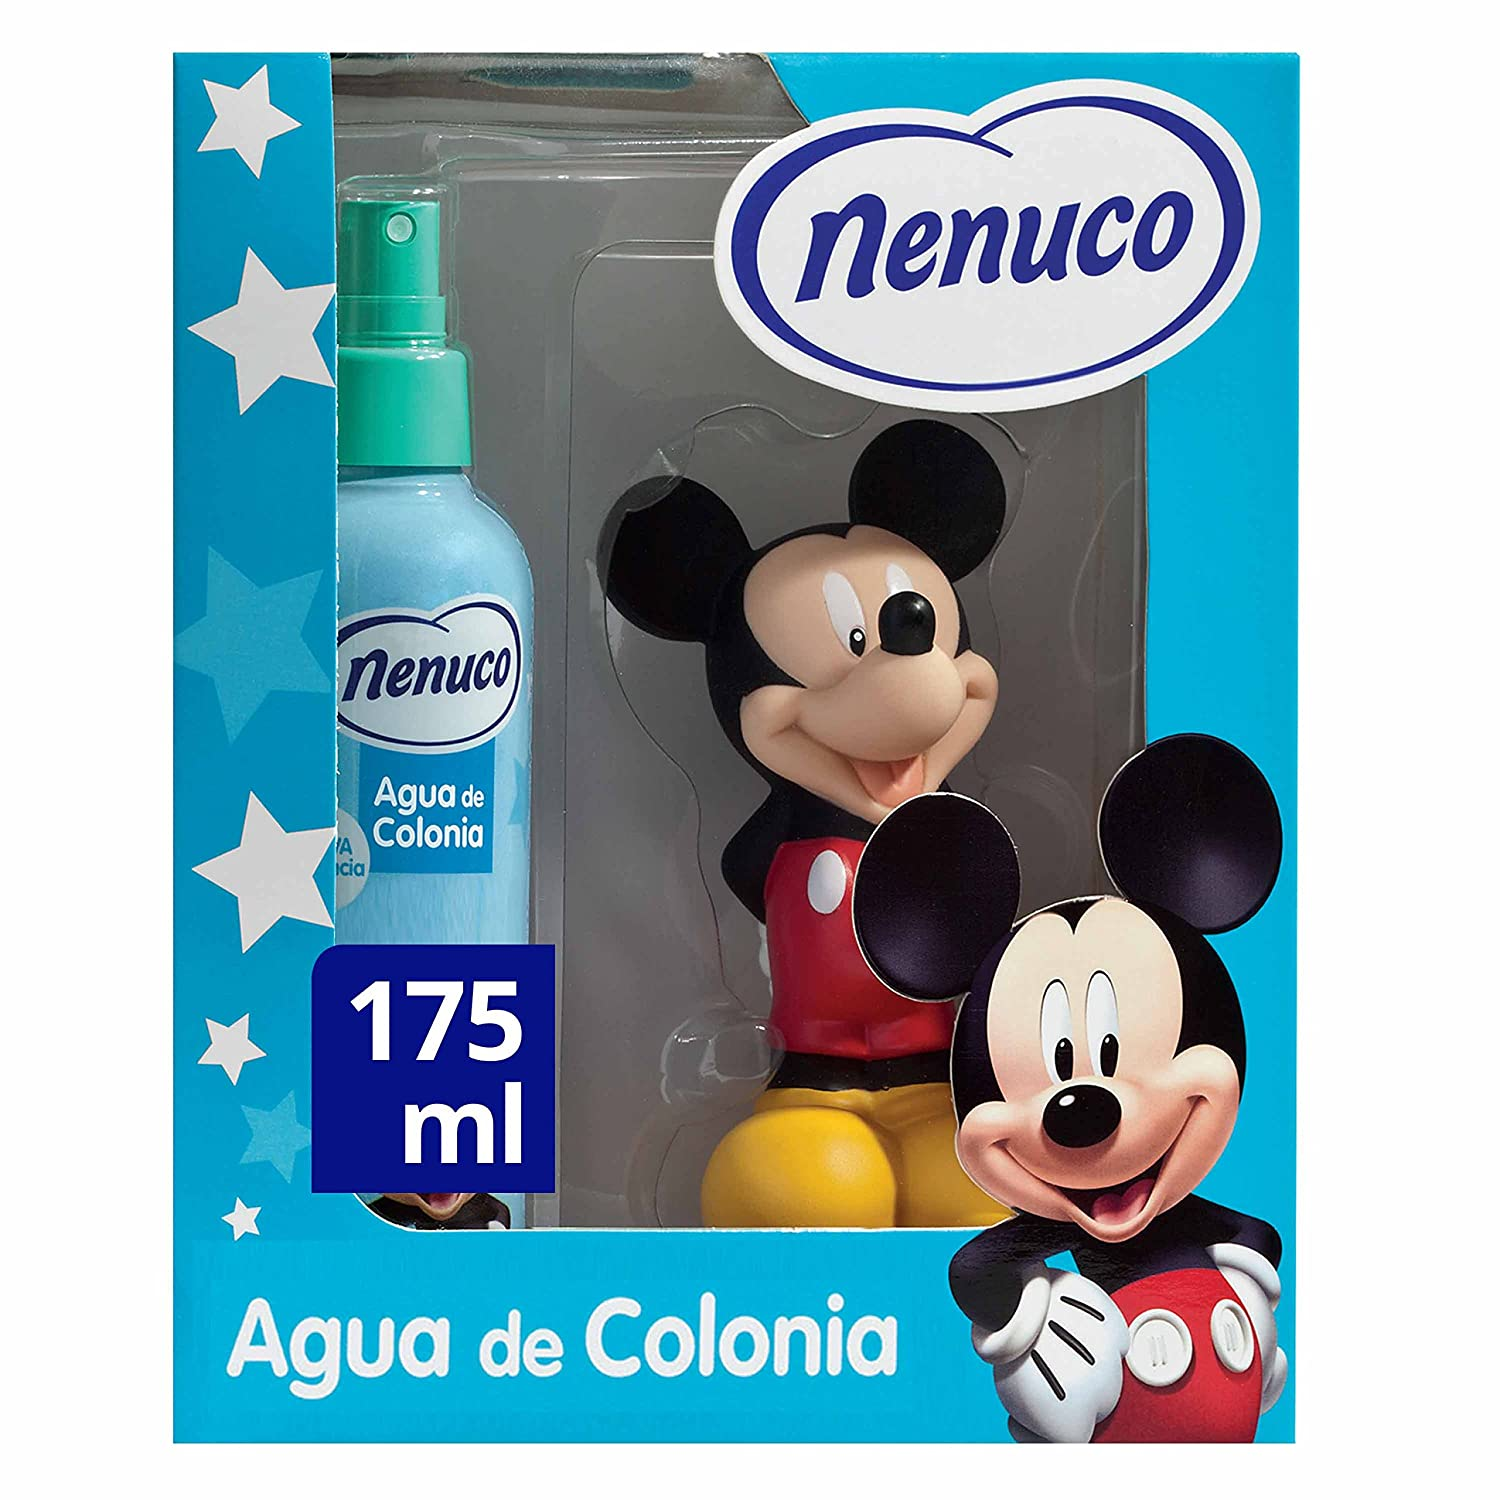 Nenuco Eau de Cologne Original Spray 316669